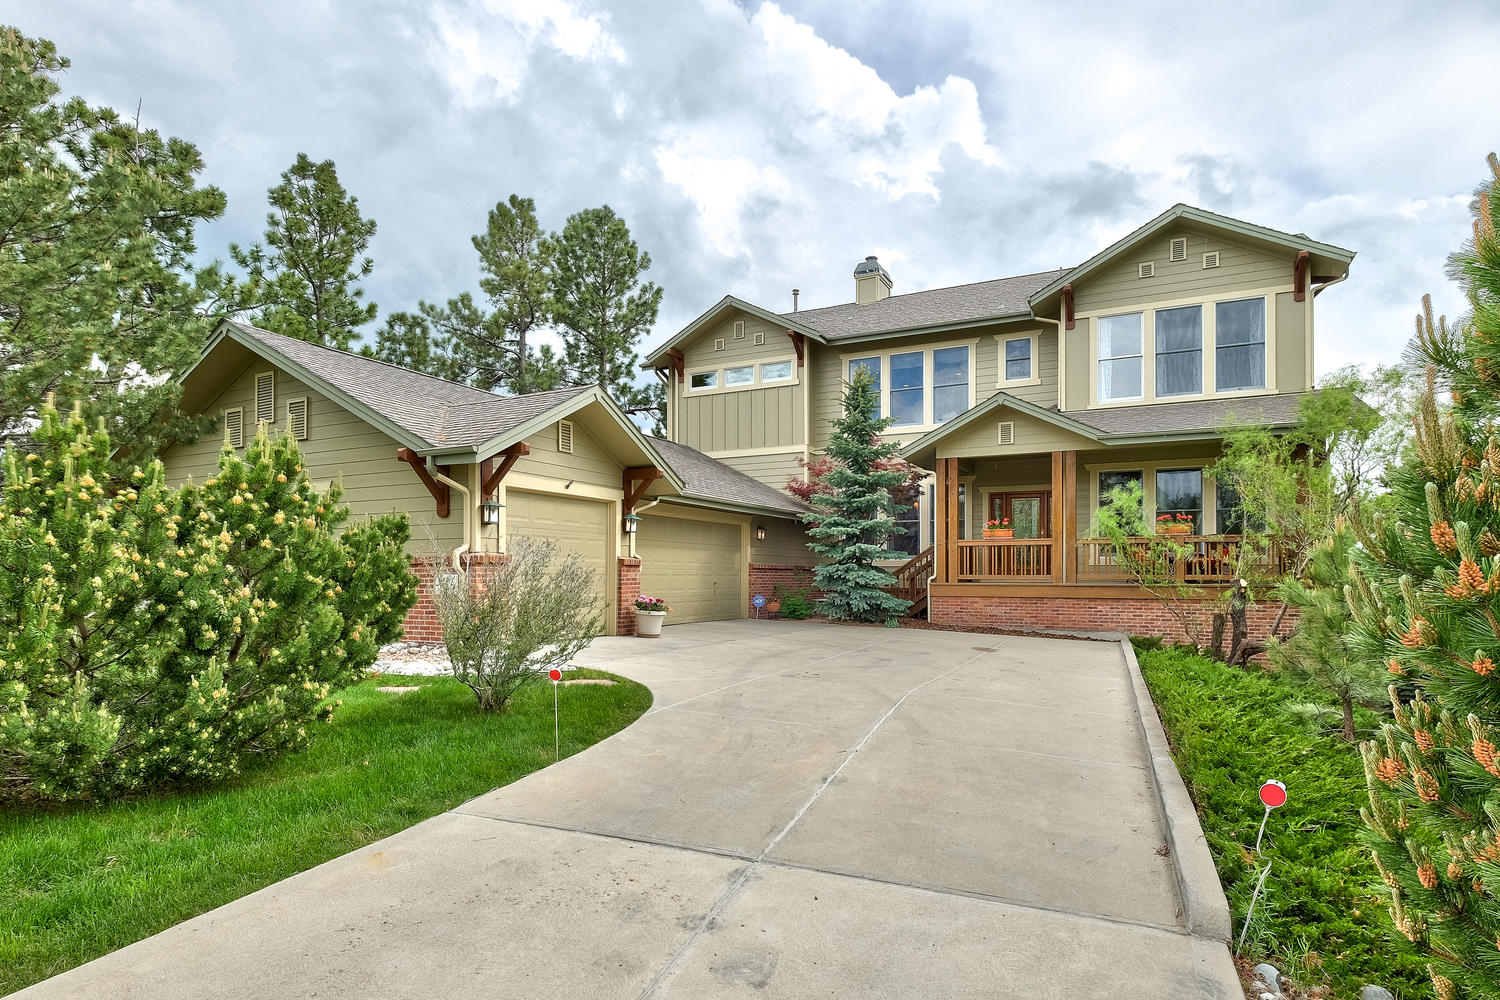 Single Family Home for Sale at 7092 Forest Ridge Cir Castle Pines, Colorado, 80108 United States